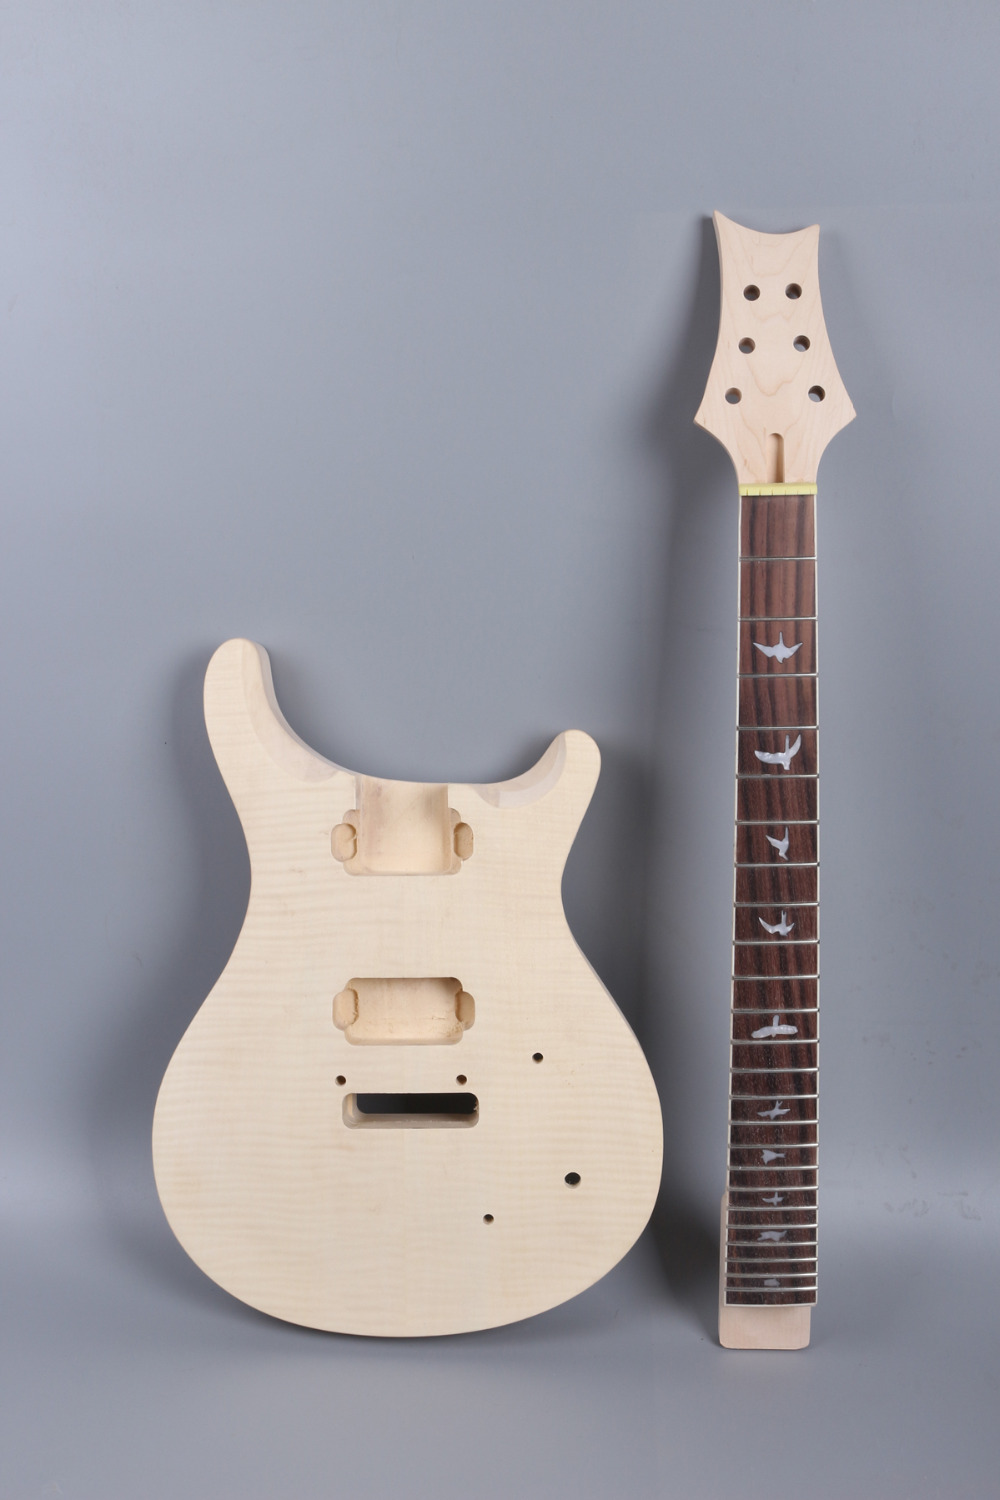 electric guitar Body flam maple top Solid wood Diy guitar parts # 24.75 inch 24 fret mahogany made and rosewood fingerboard high quality custom shop lp jazz hollow body electric guitar vibrato system rosewood fingerboard mahogany body guitar